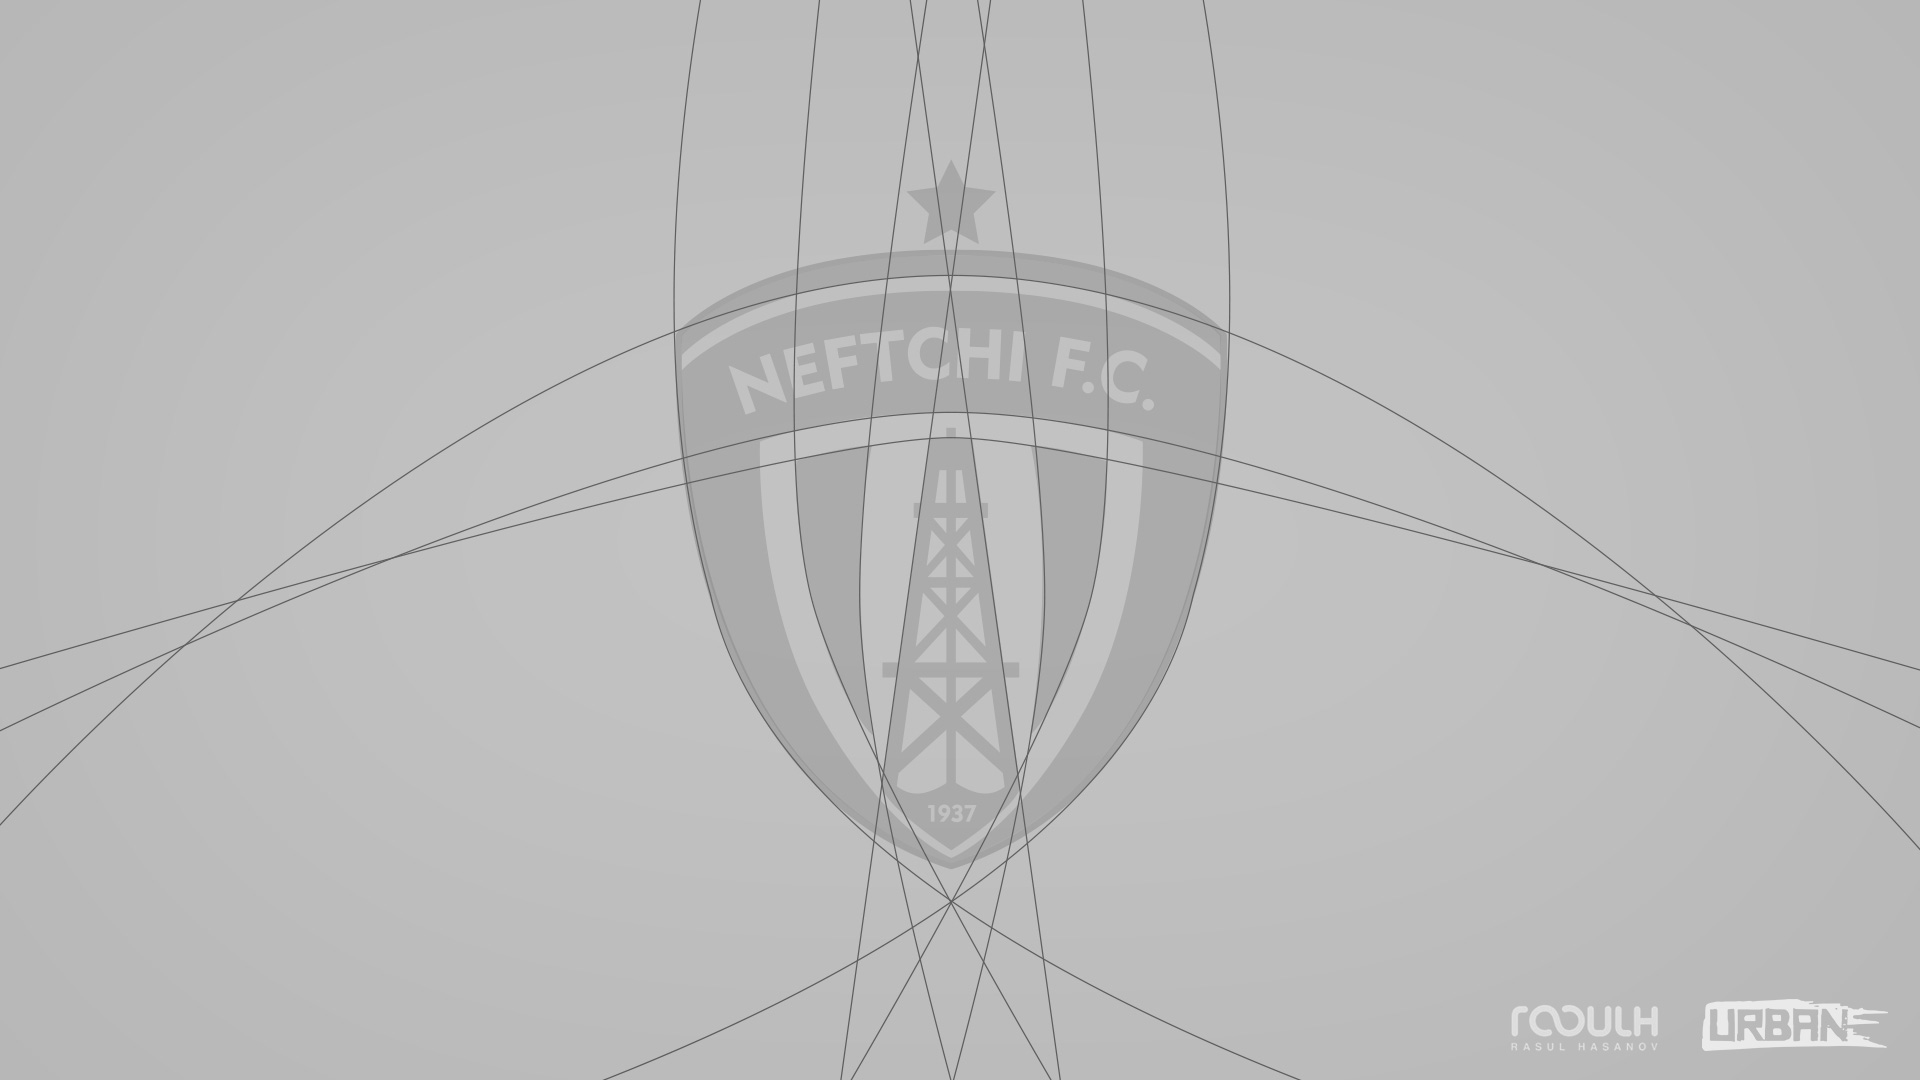 neftchi_shapes